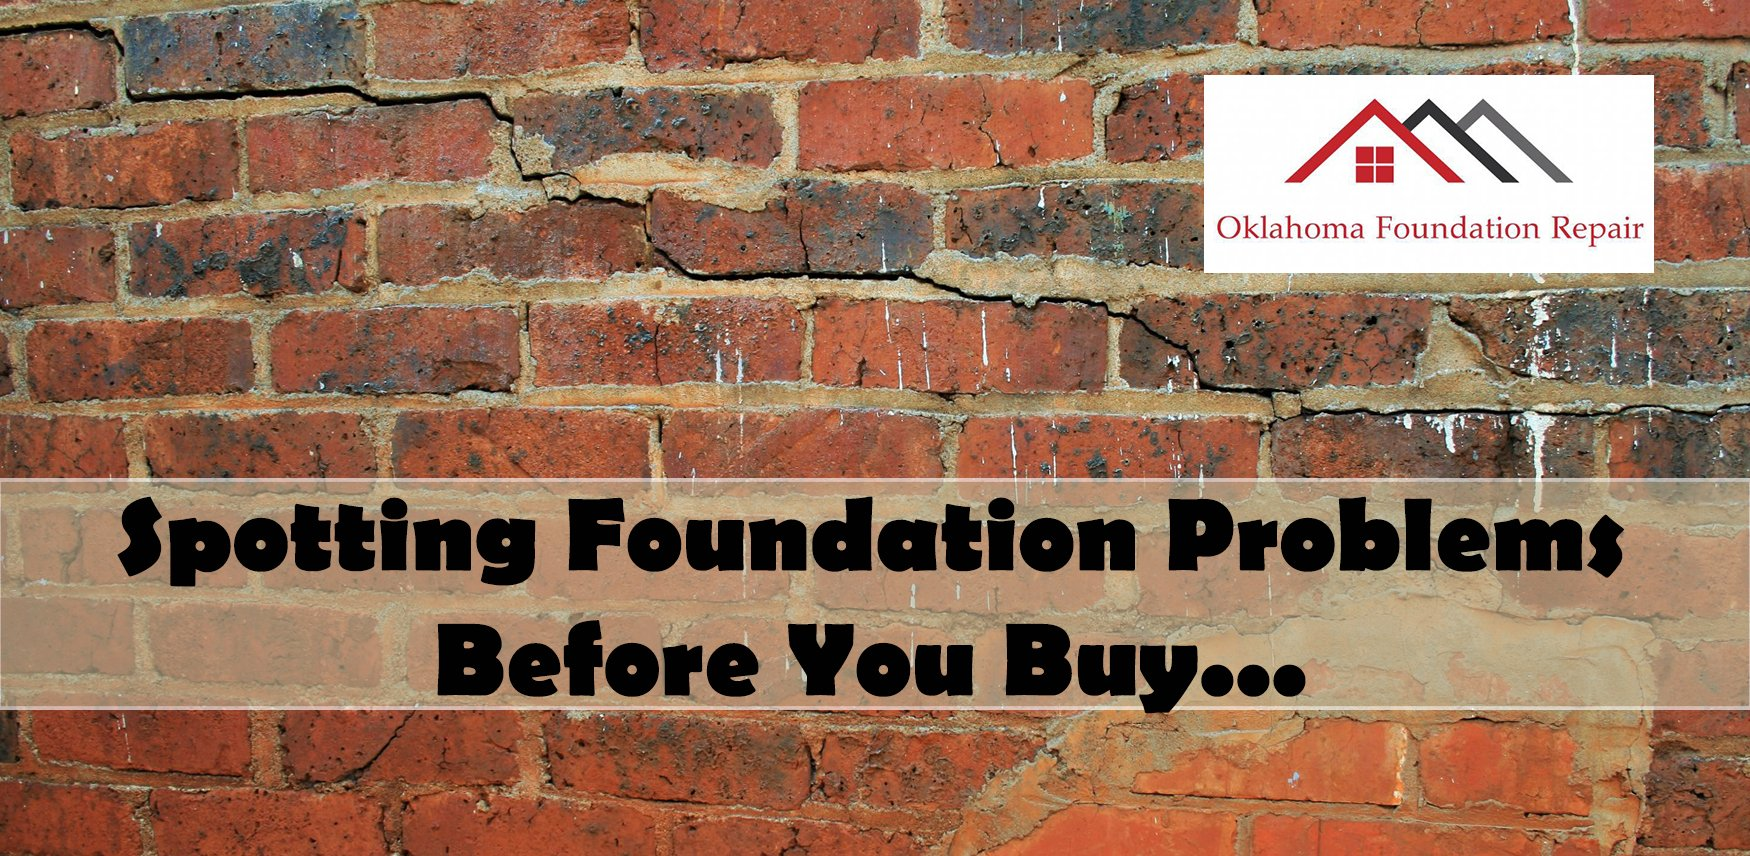 Spotting Foundation Problems Before You Buy